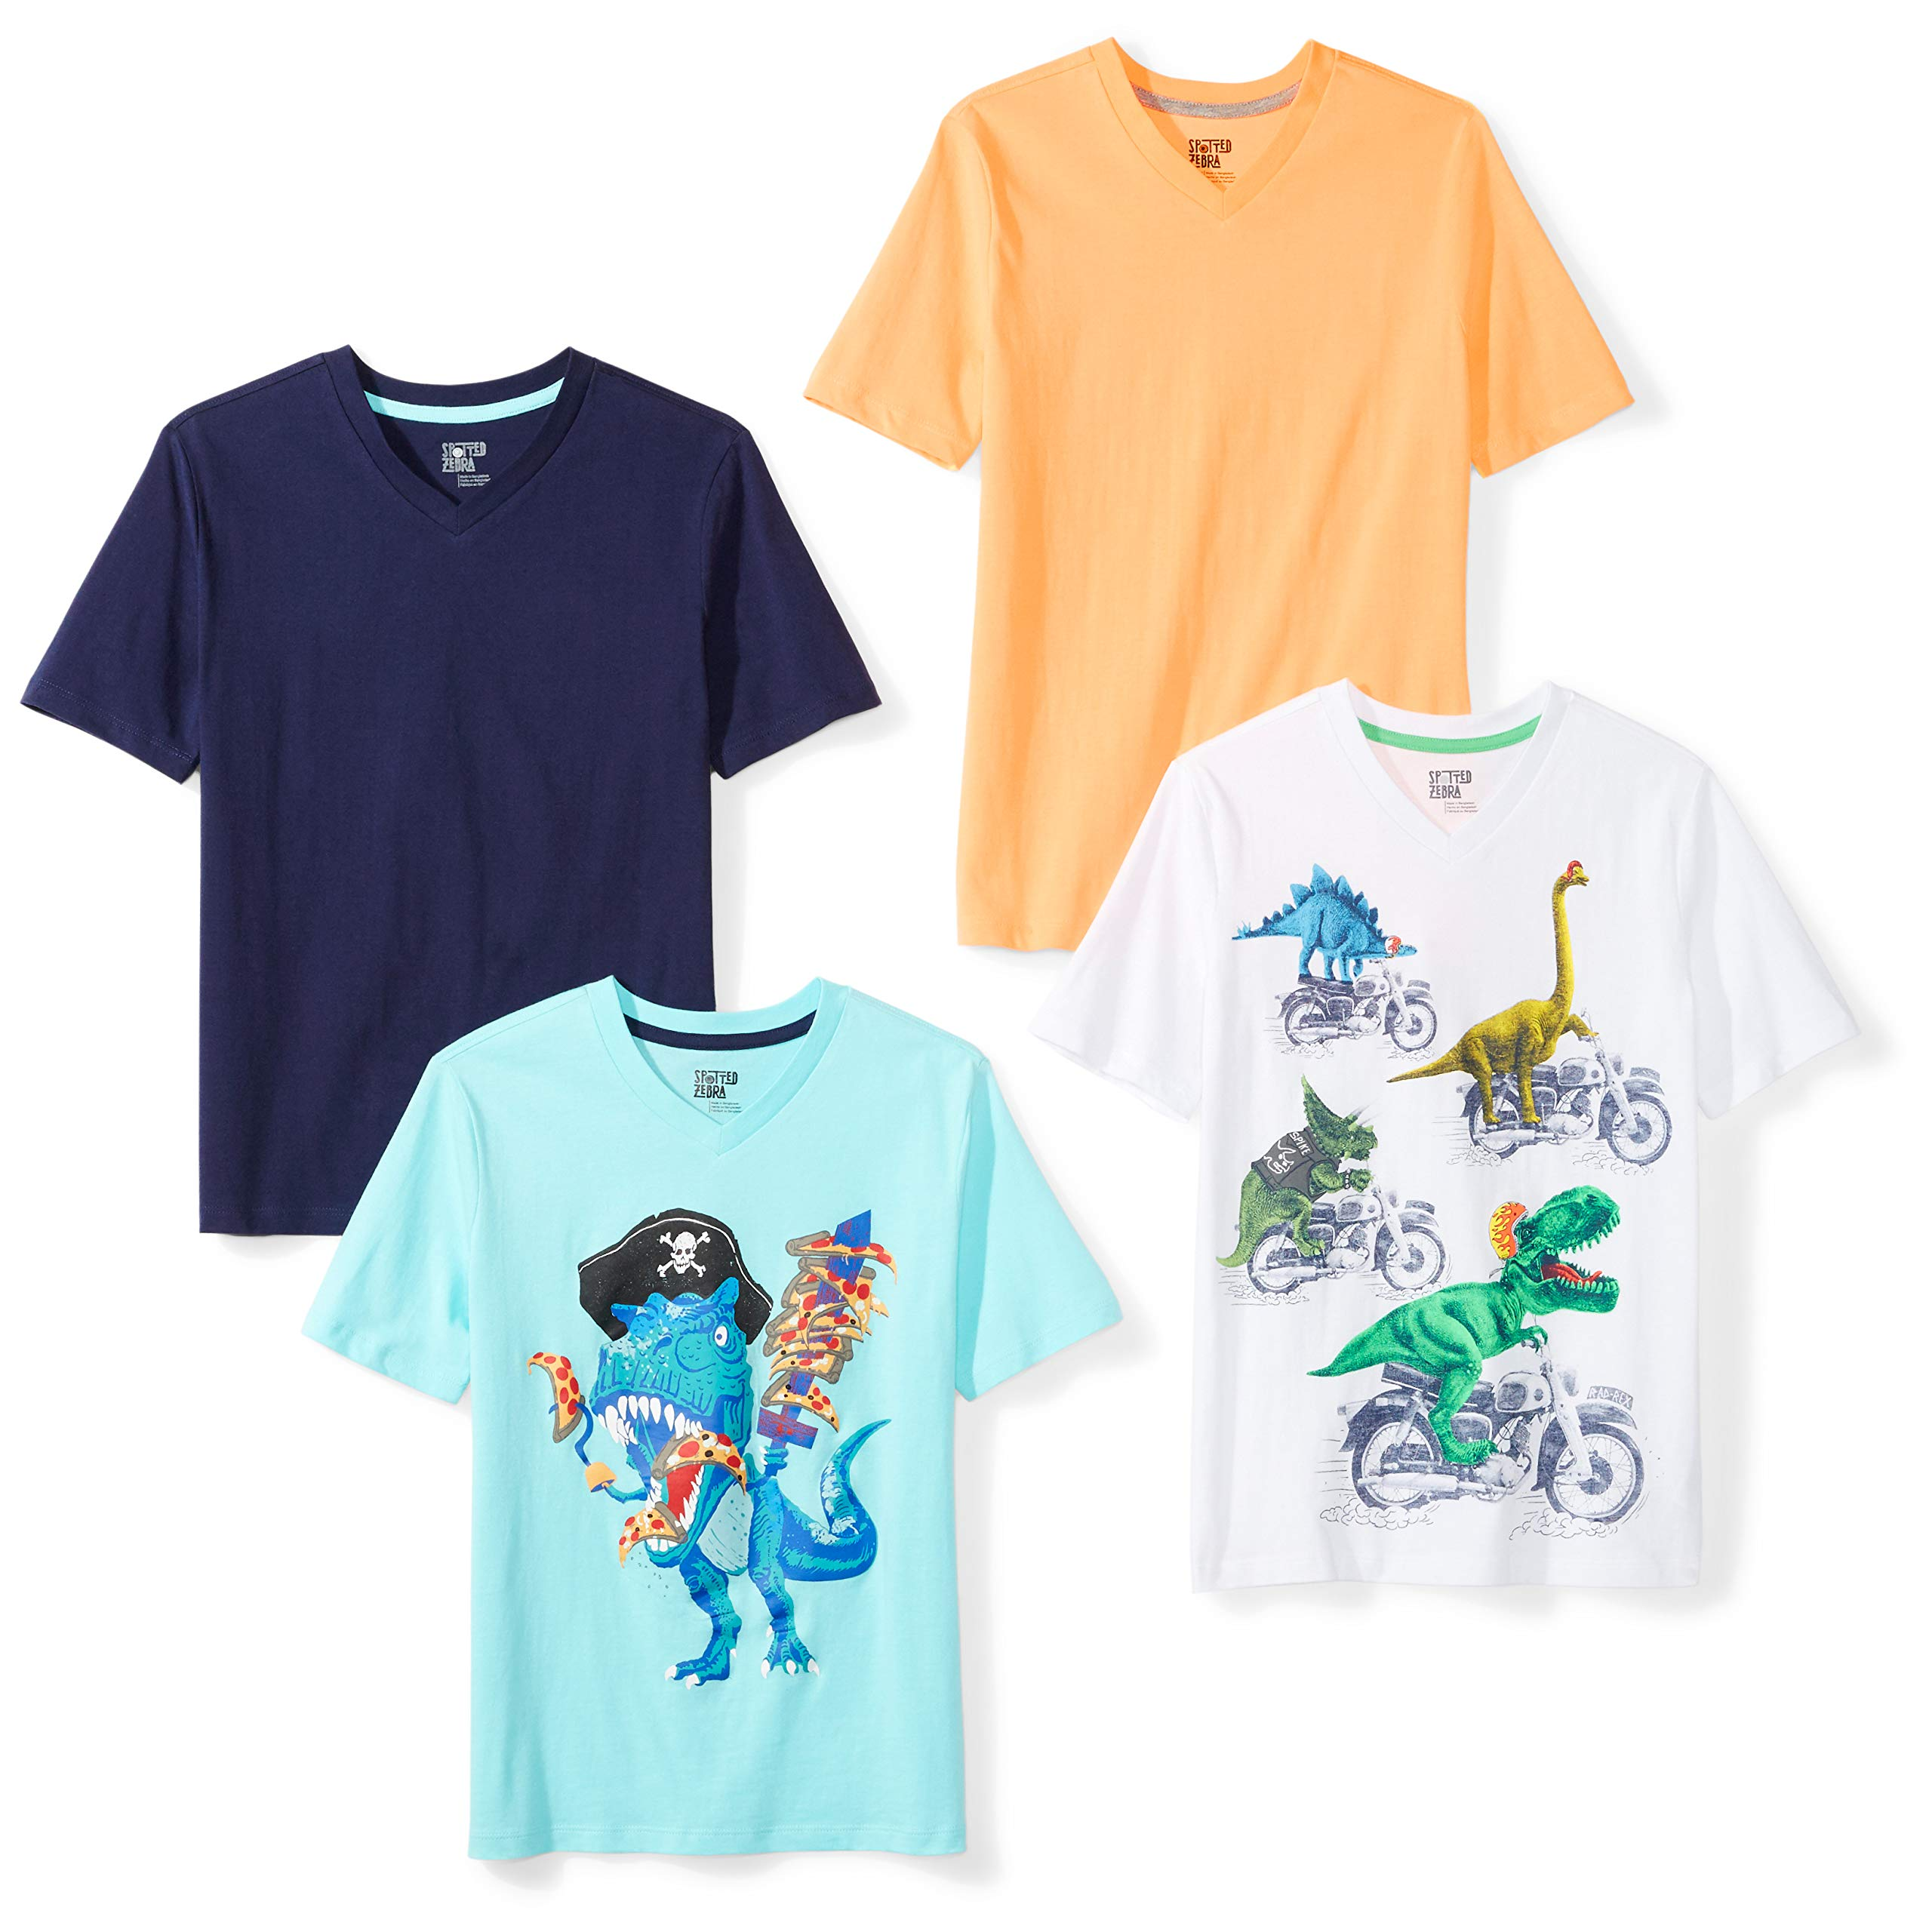 Amazon Brand - Spotted Zebra Boys' Little Kid 4-Pack Short-Sleeve V-Neck T-Shirts, Dinosaurs, Small (6-7)